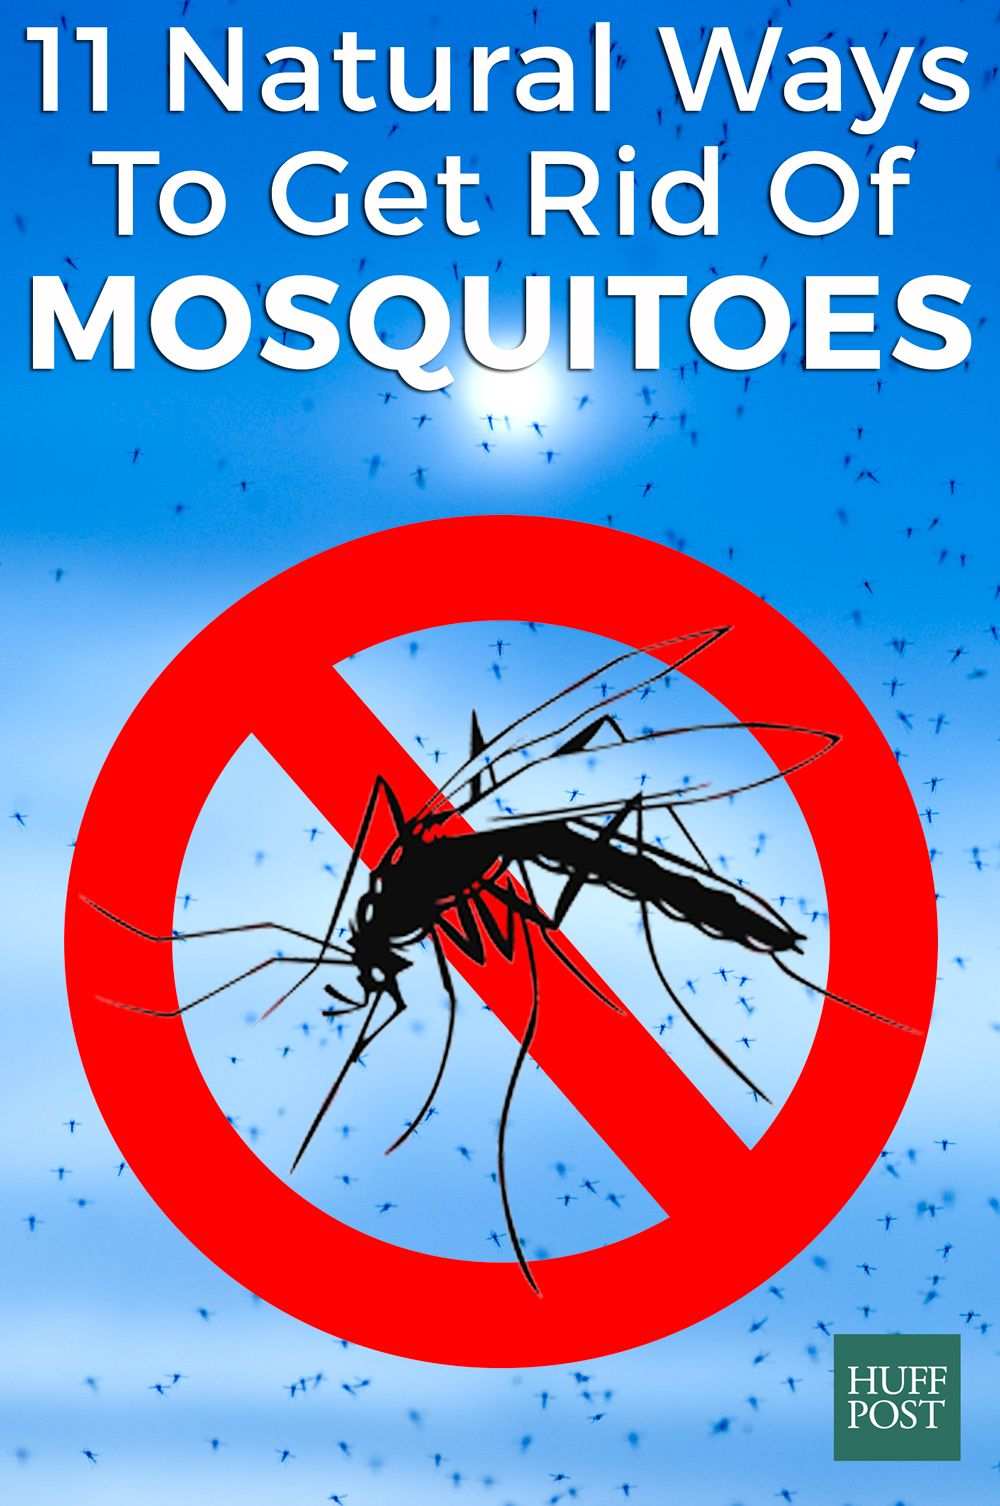 Get Rid Of Mosquitoes This Summer